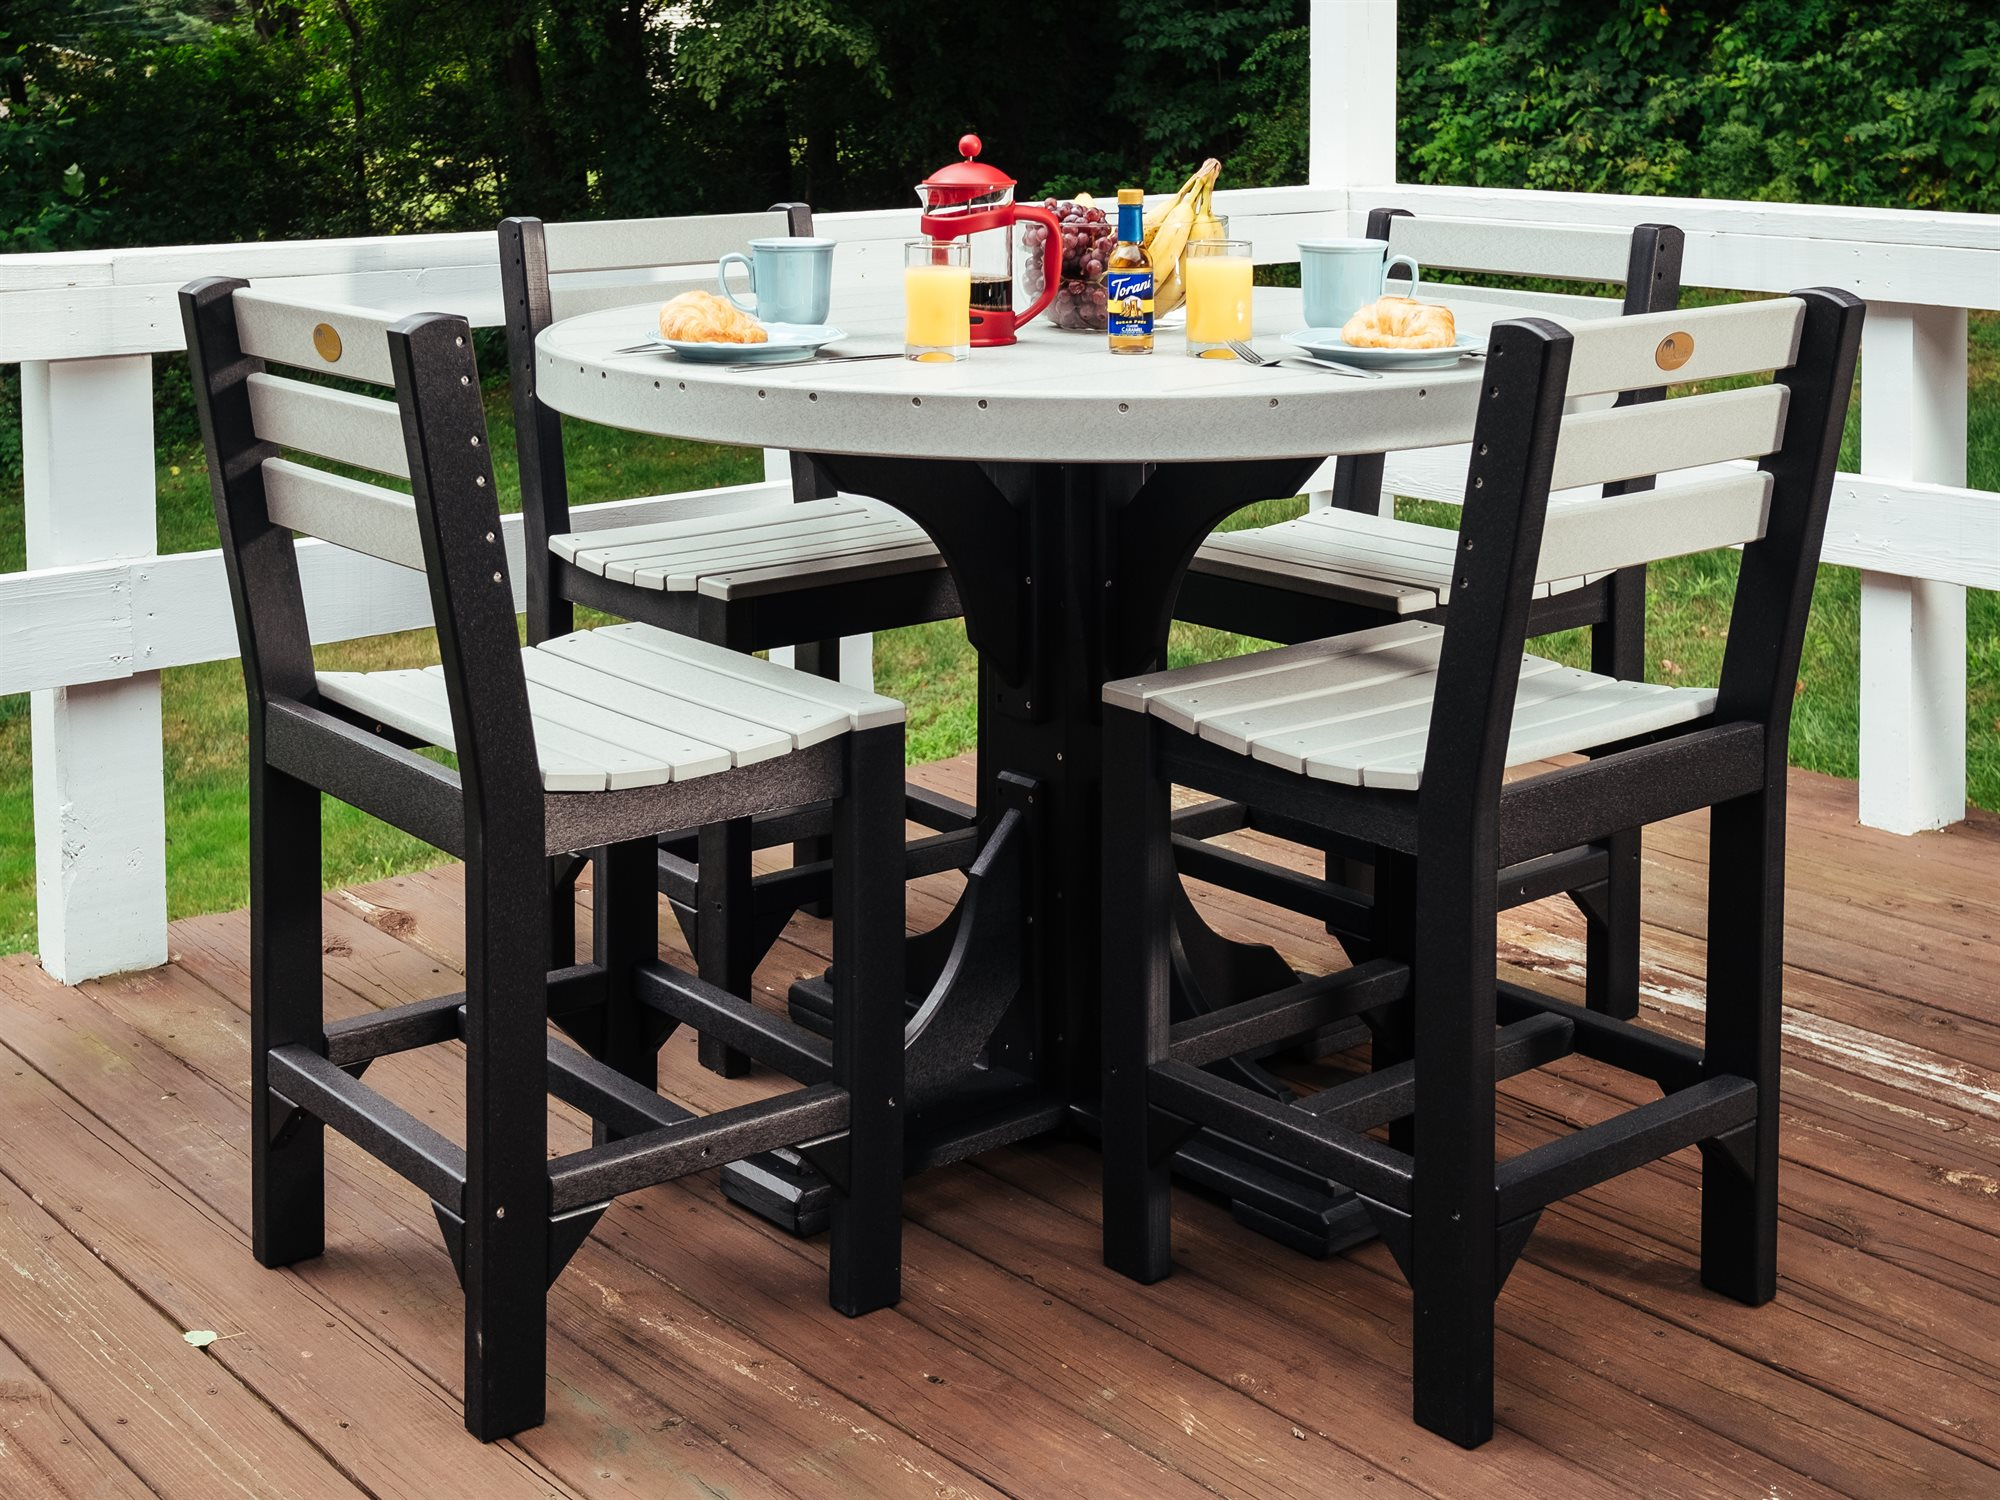 Luxcraft Poly 4 Round Table Dining Set Luxdiningset5